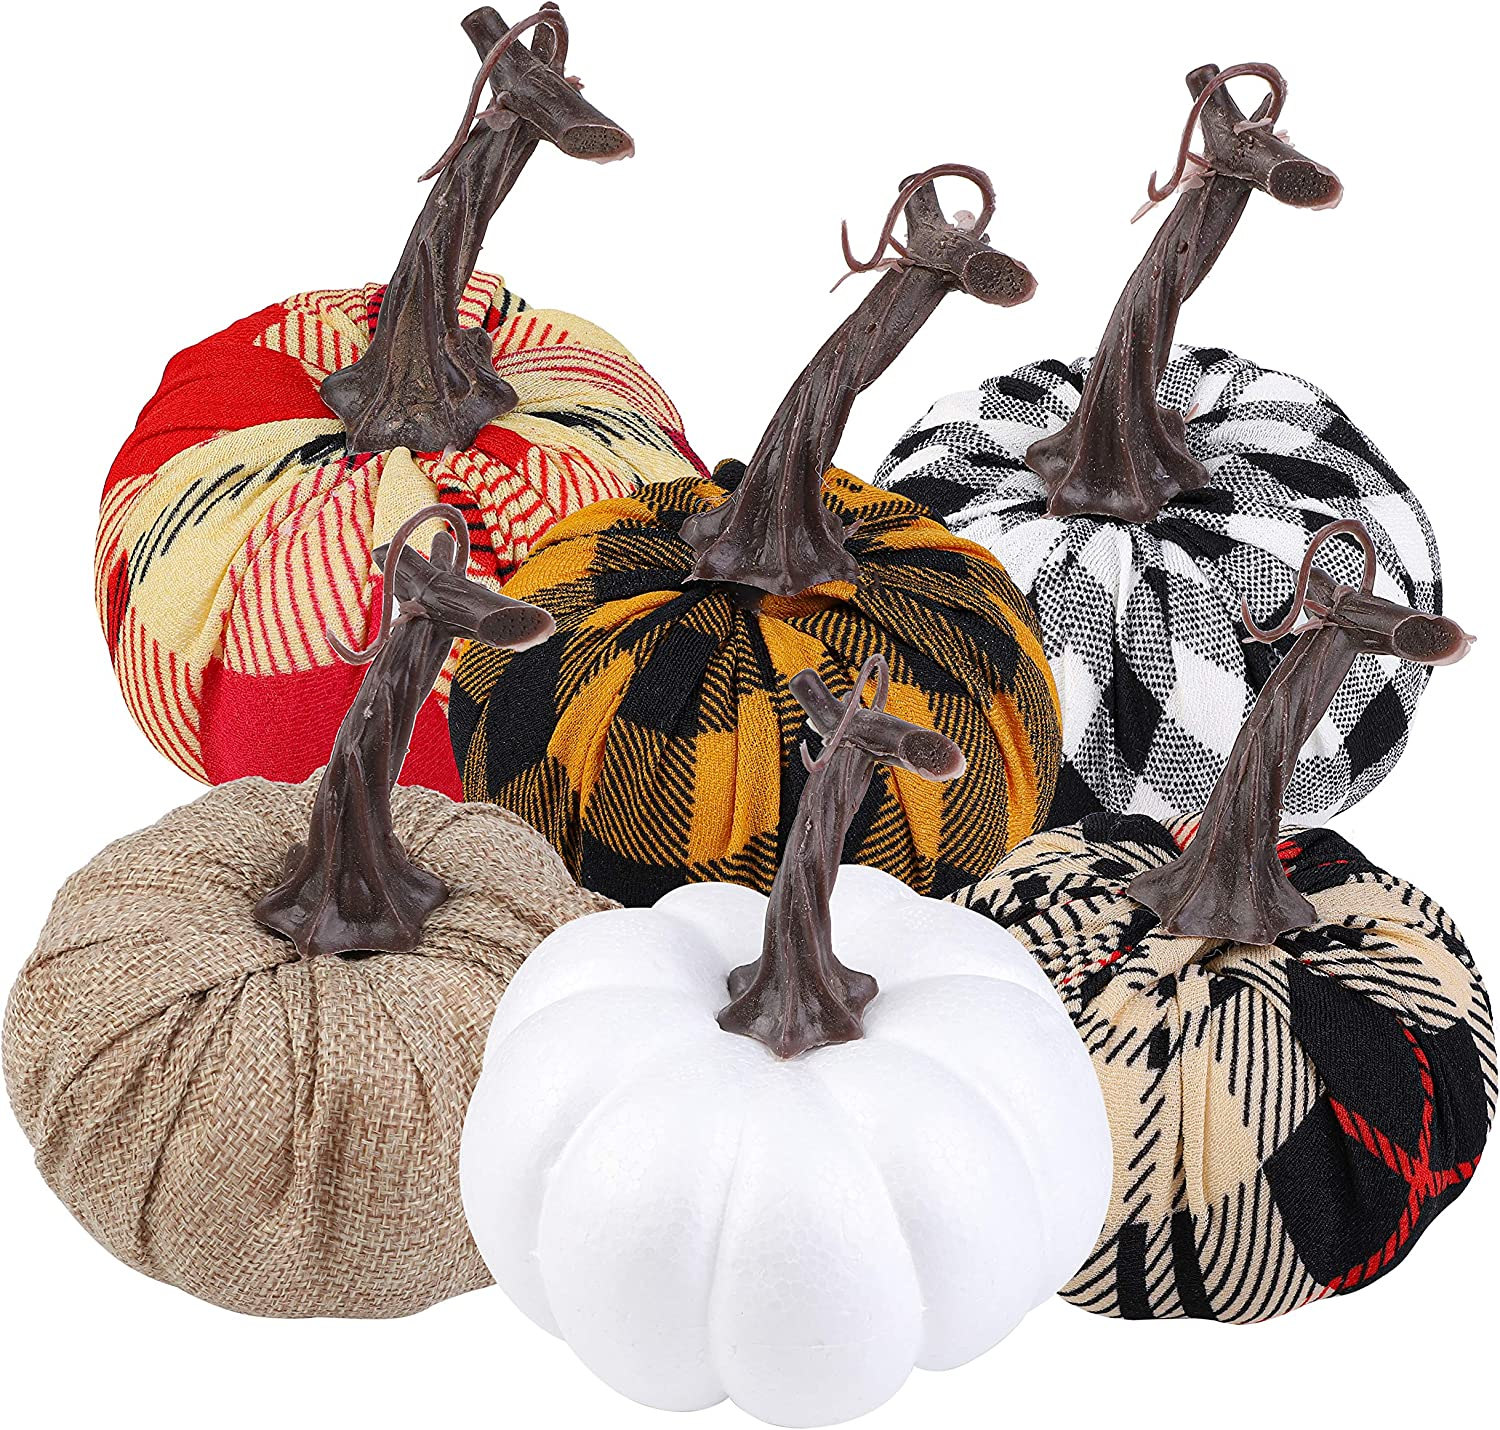 Aneco 6 Pack 4.7 Inches Artificial Pumpkins Assorted Harvest Decor Fabric Lifelike Decoration Pumpkins for Thanksgiving Seasonal Holiday Tabletop Decoration